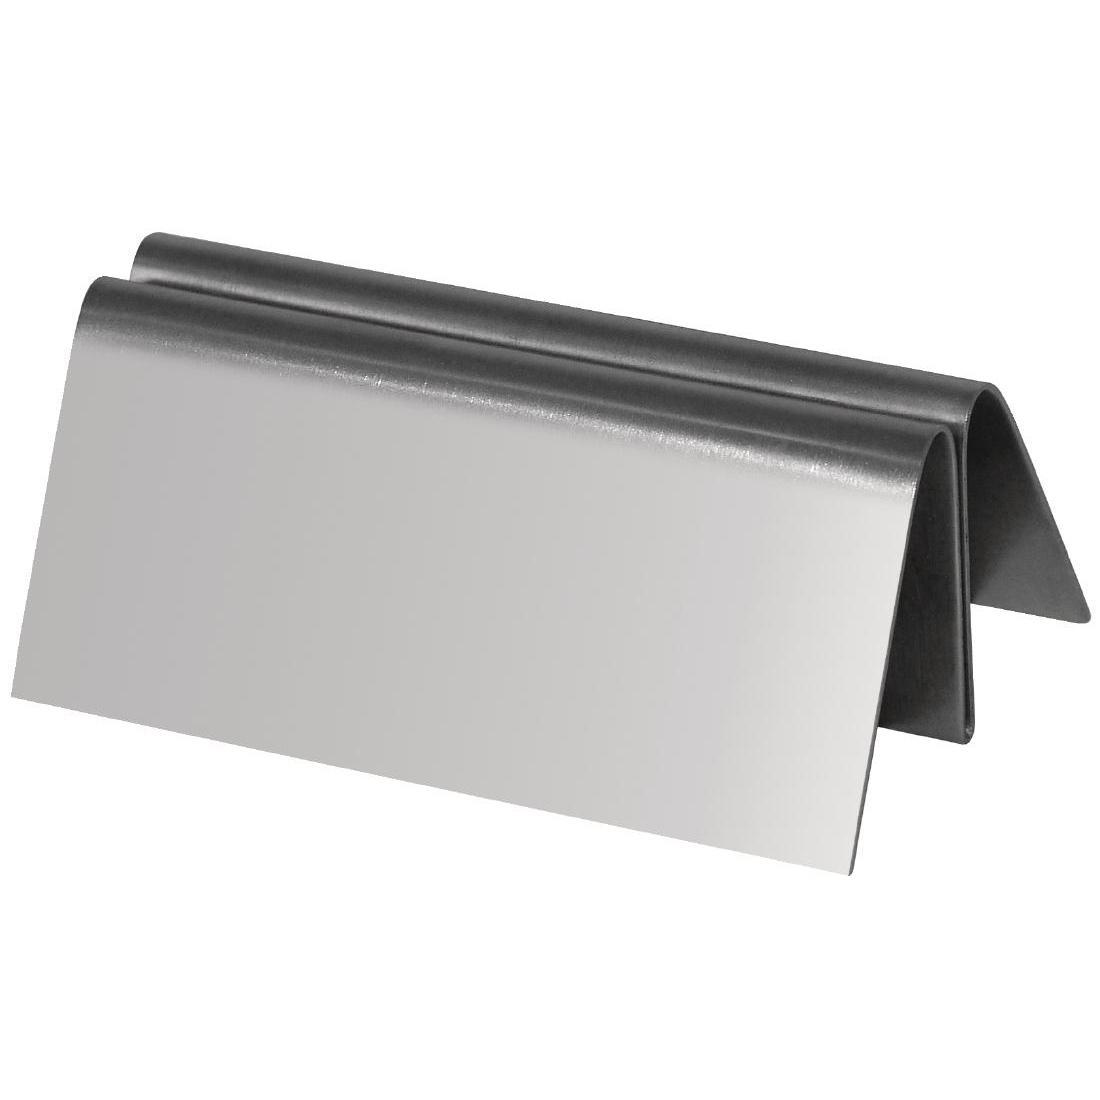 Stainless Steel Menu Holder